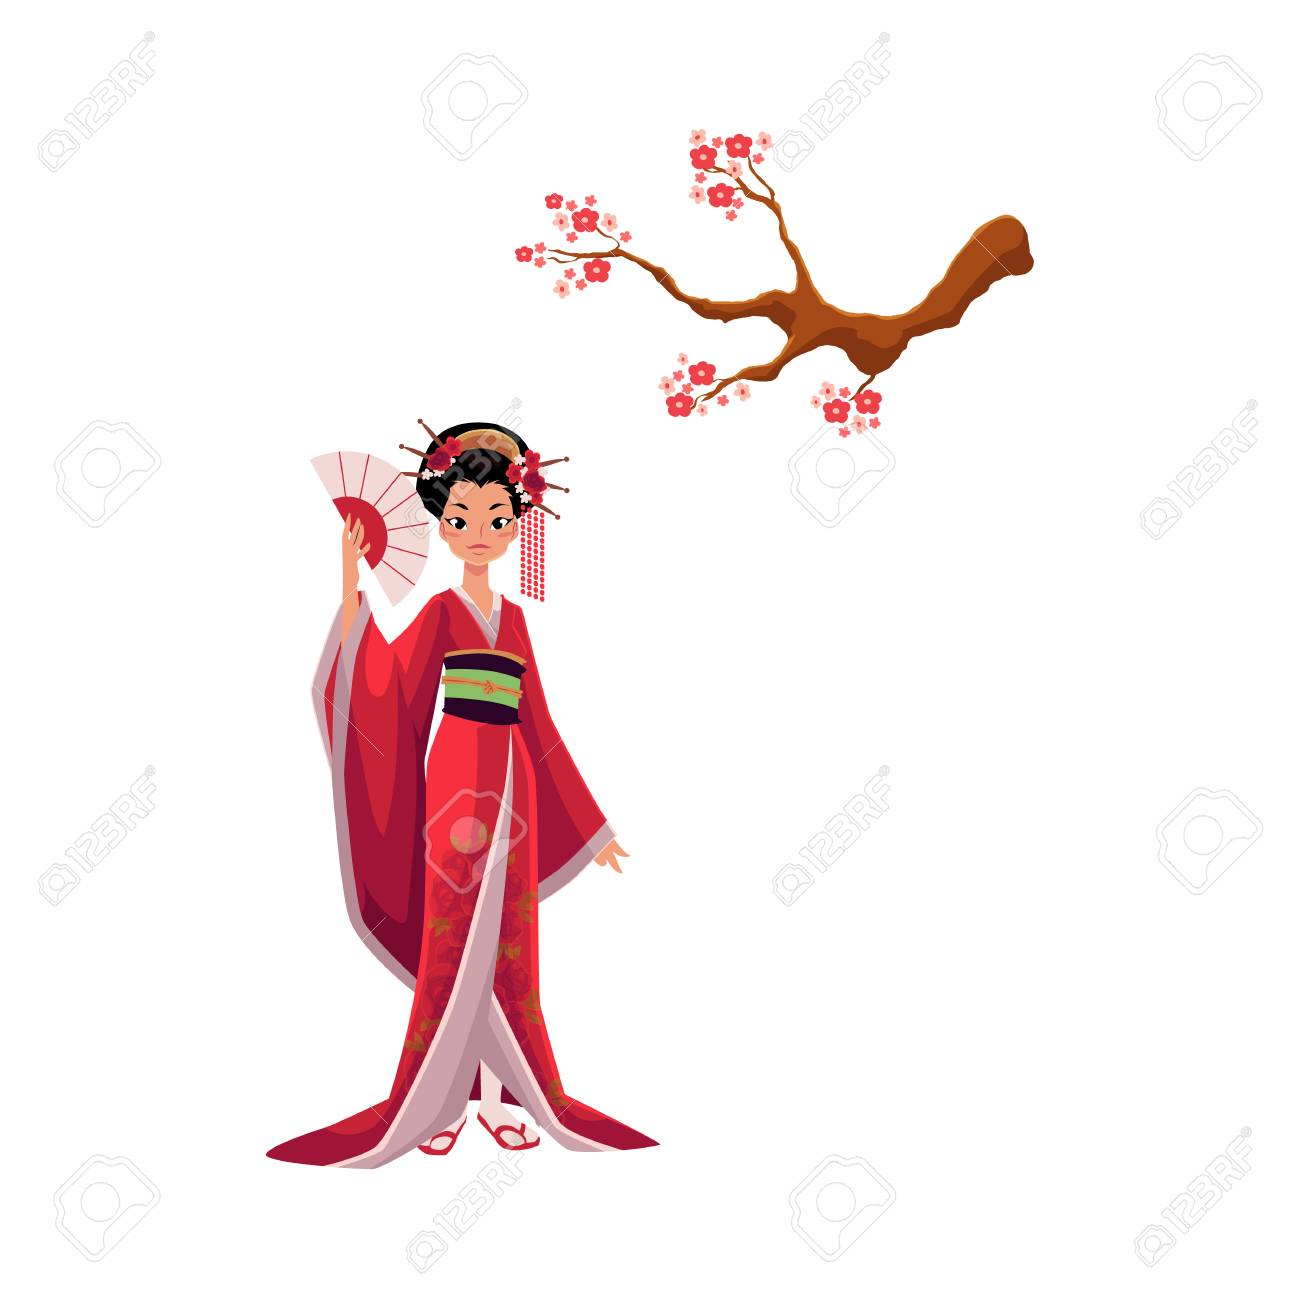 Geisha In Kimono And Blooming Cherry Tree Sakura Branch Symbols Royalty Free Cliparts Vectors And Stock Illustration Image 88223232 Looking for japanese tree cartoon psd free or illustration? geisha in kimono and blooming cherry tree sakura branch symbols